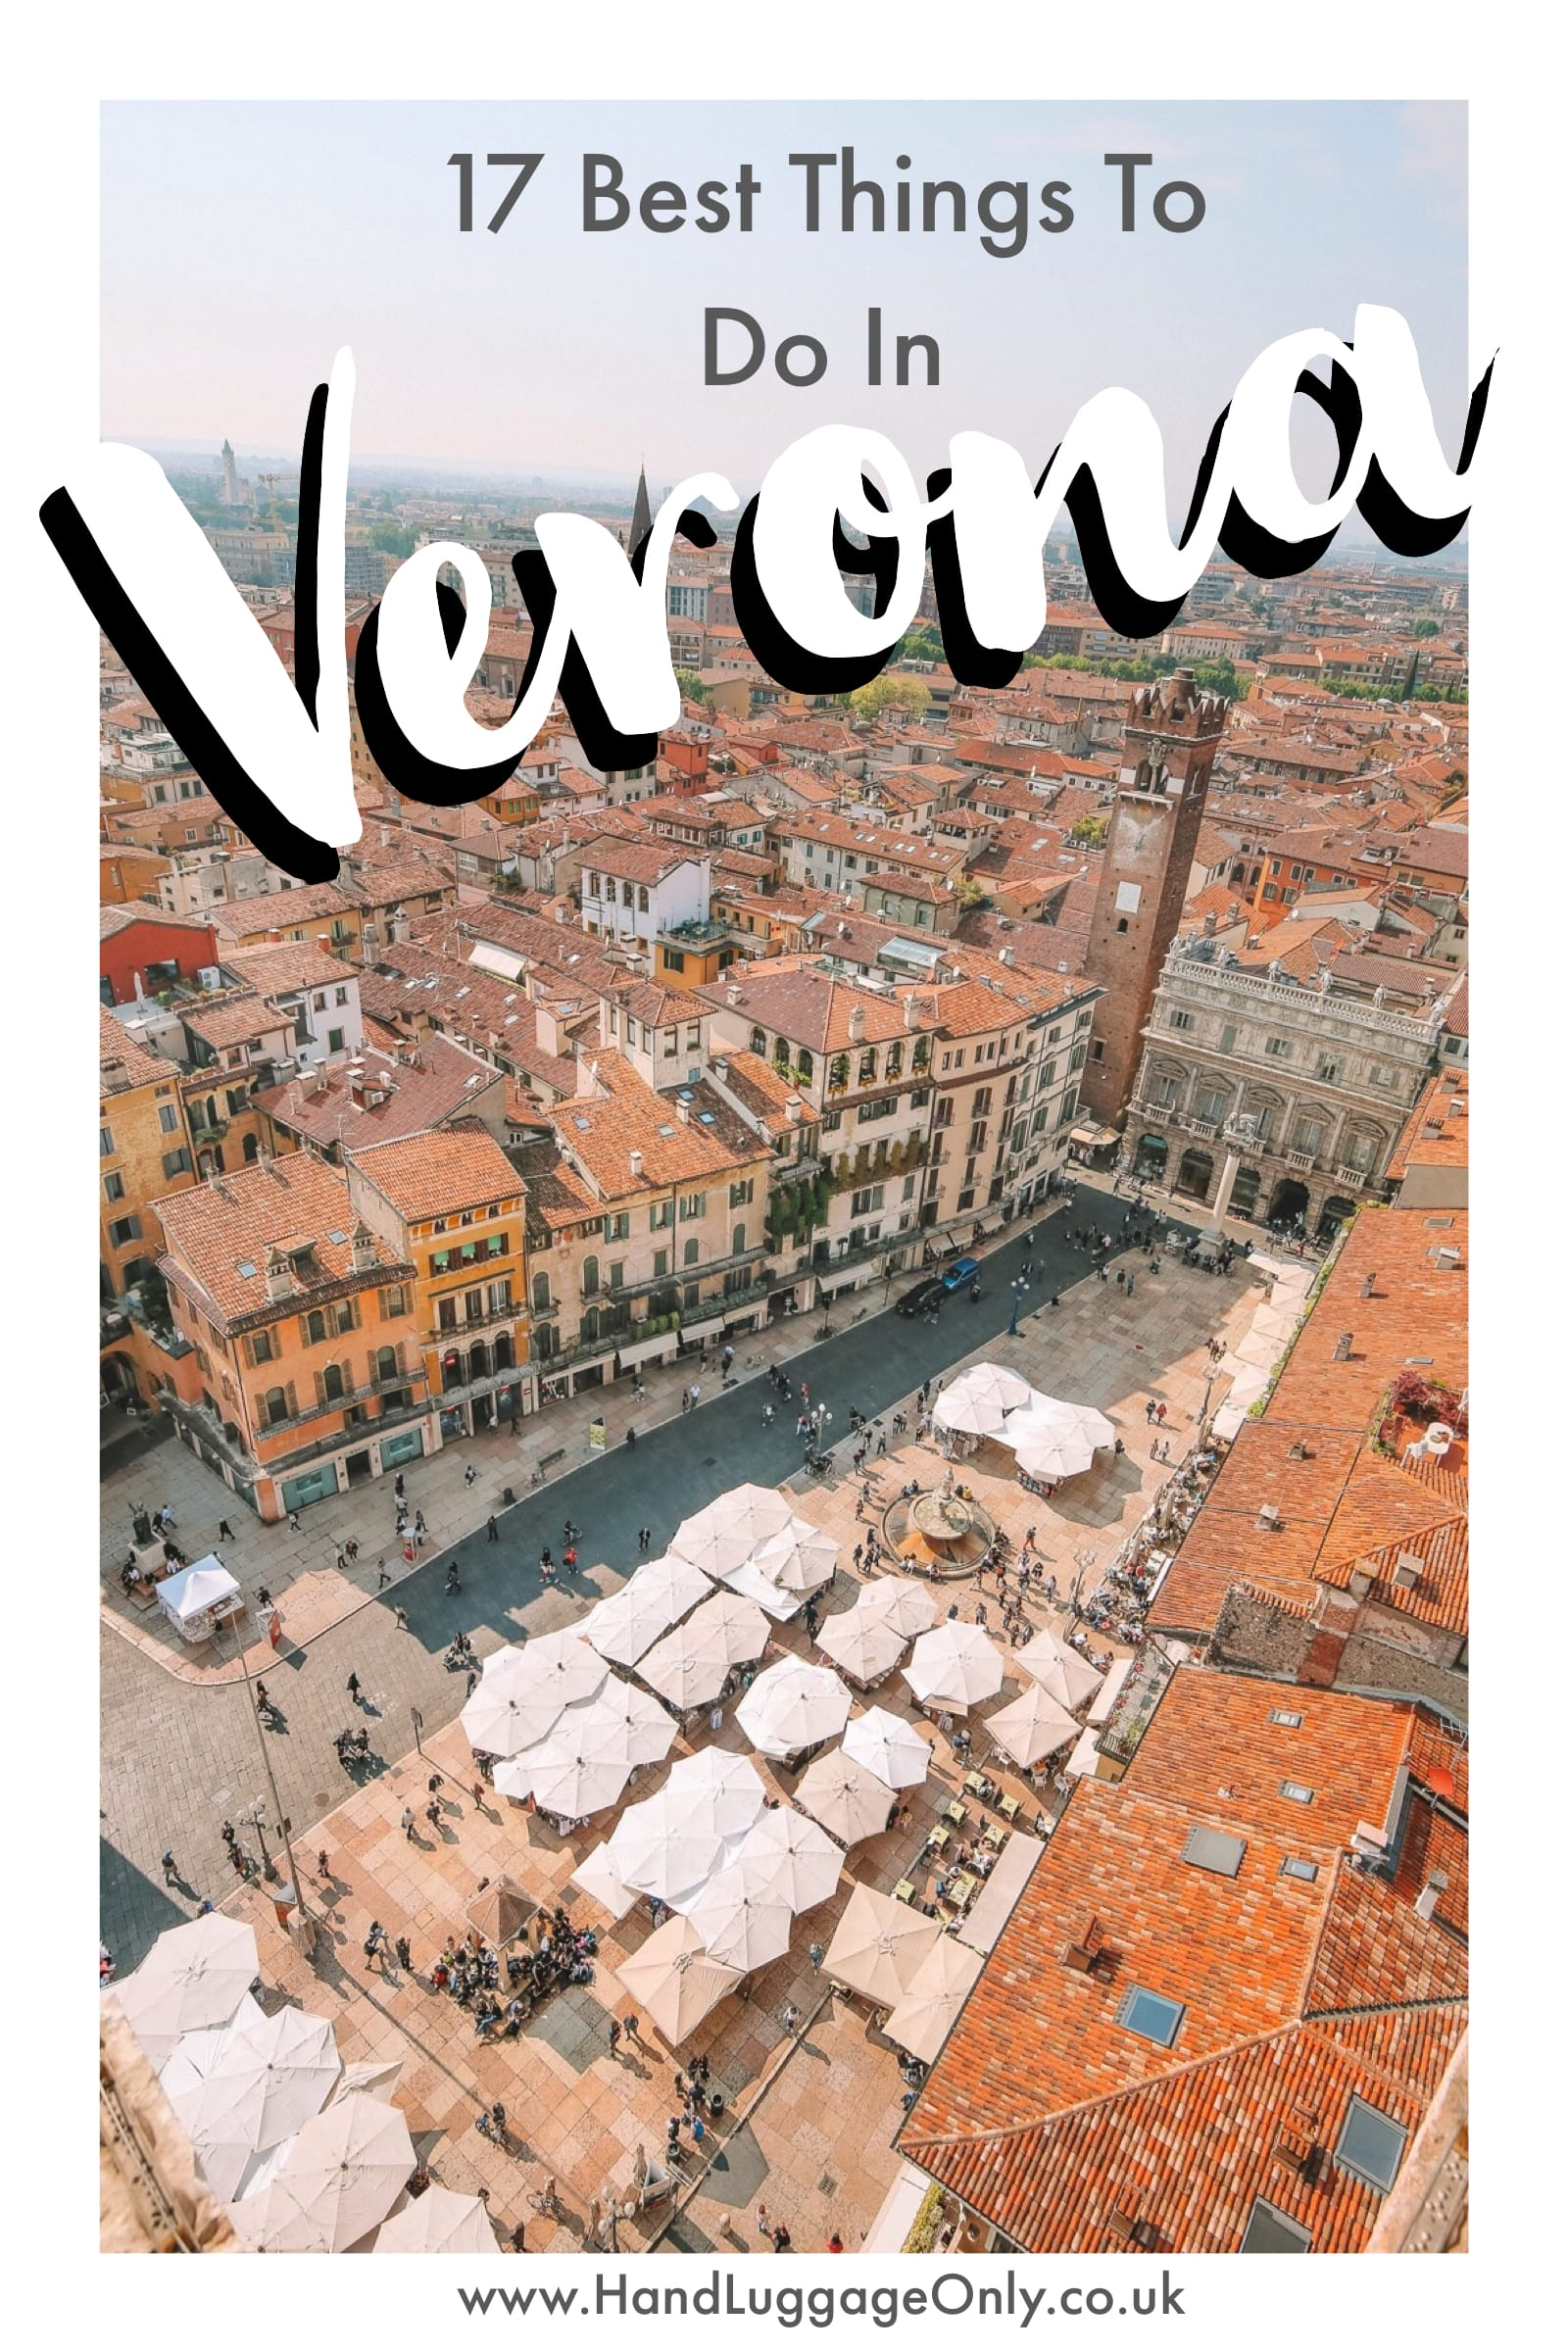 17 Best Things To Do In Verona, Italy